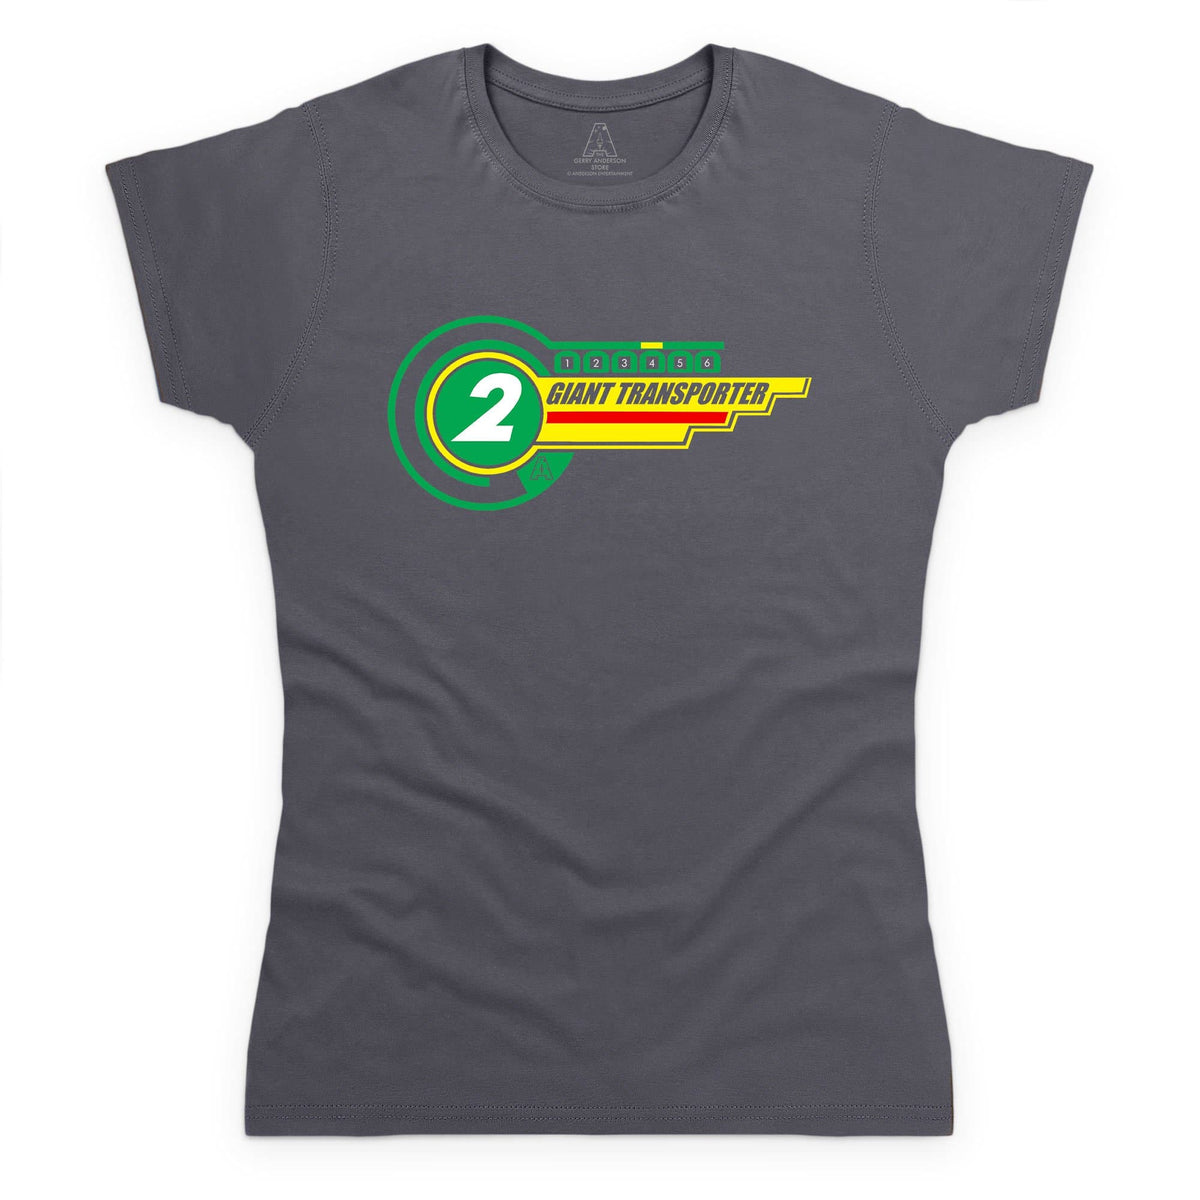 Thunderbird 2 Inspired Women's T-Shirt - The Gerry Anderson Store